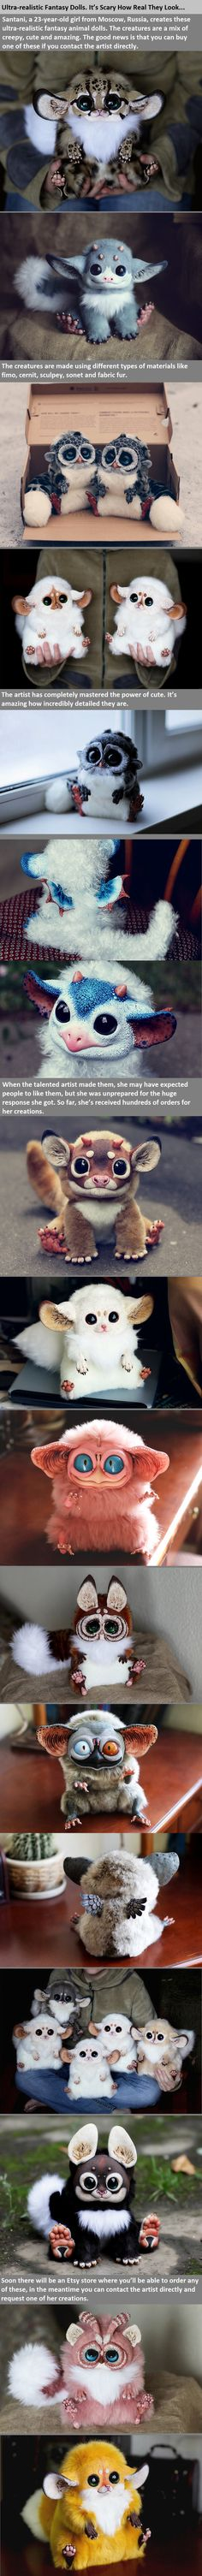 Fantasy Pets WANT the 1st one that looks like an Ocelot